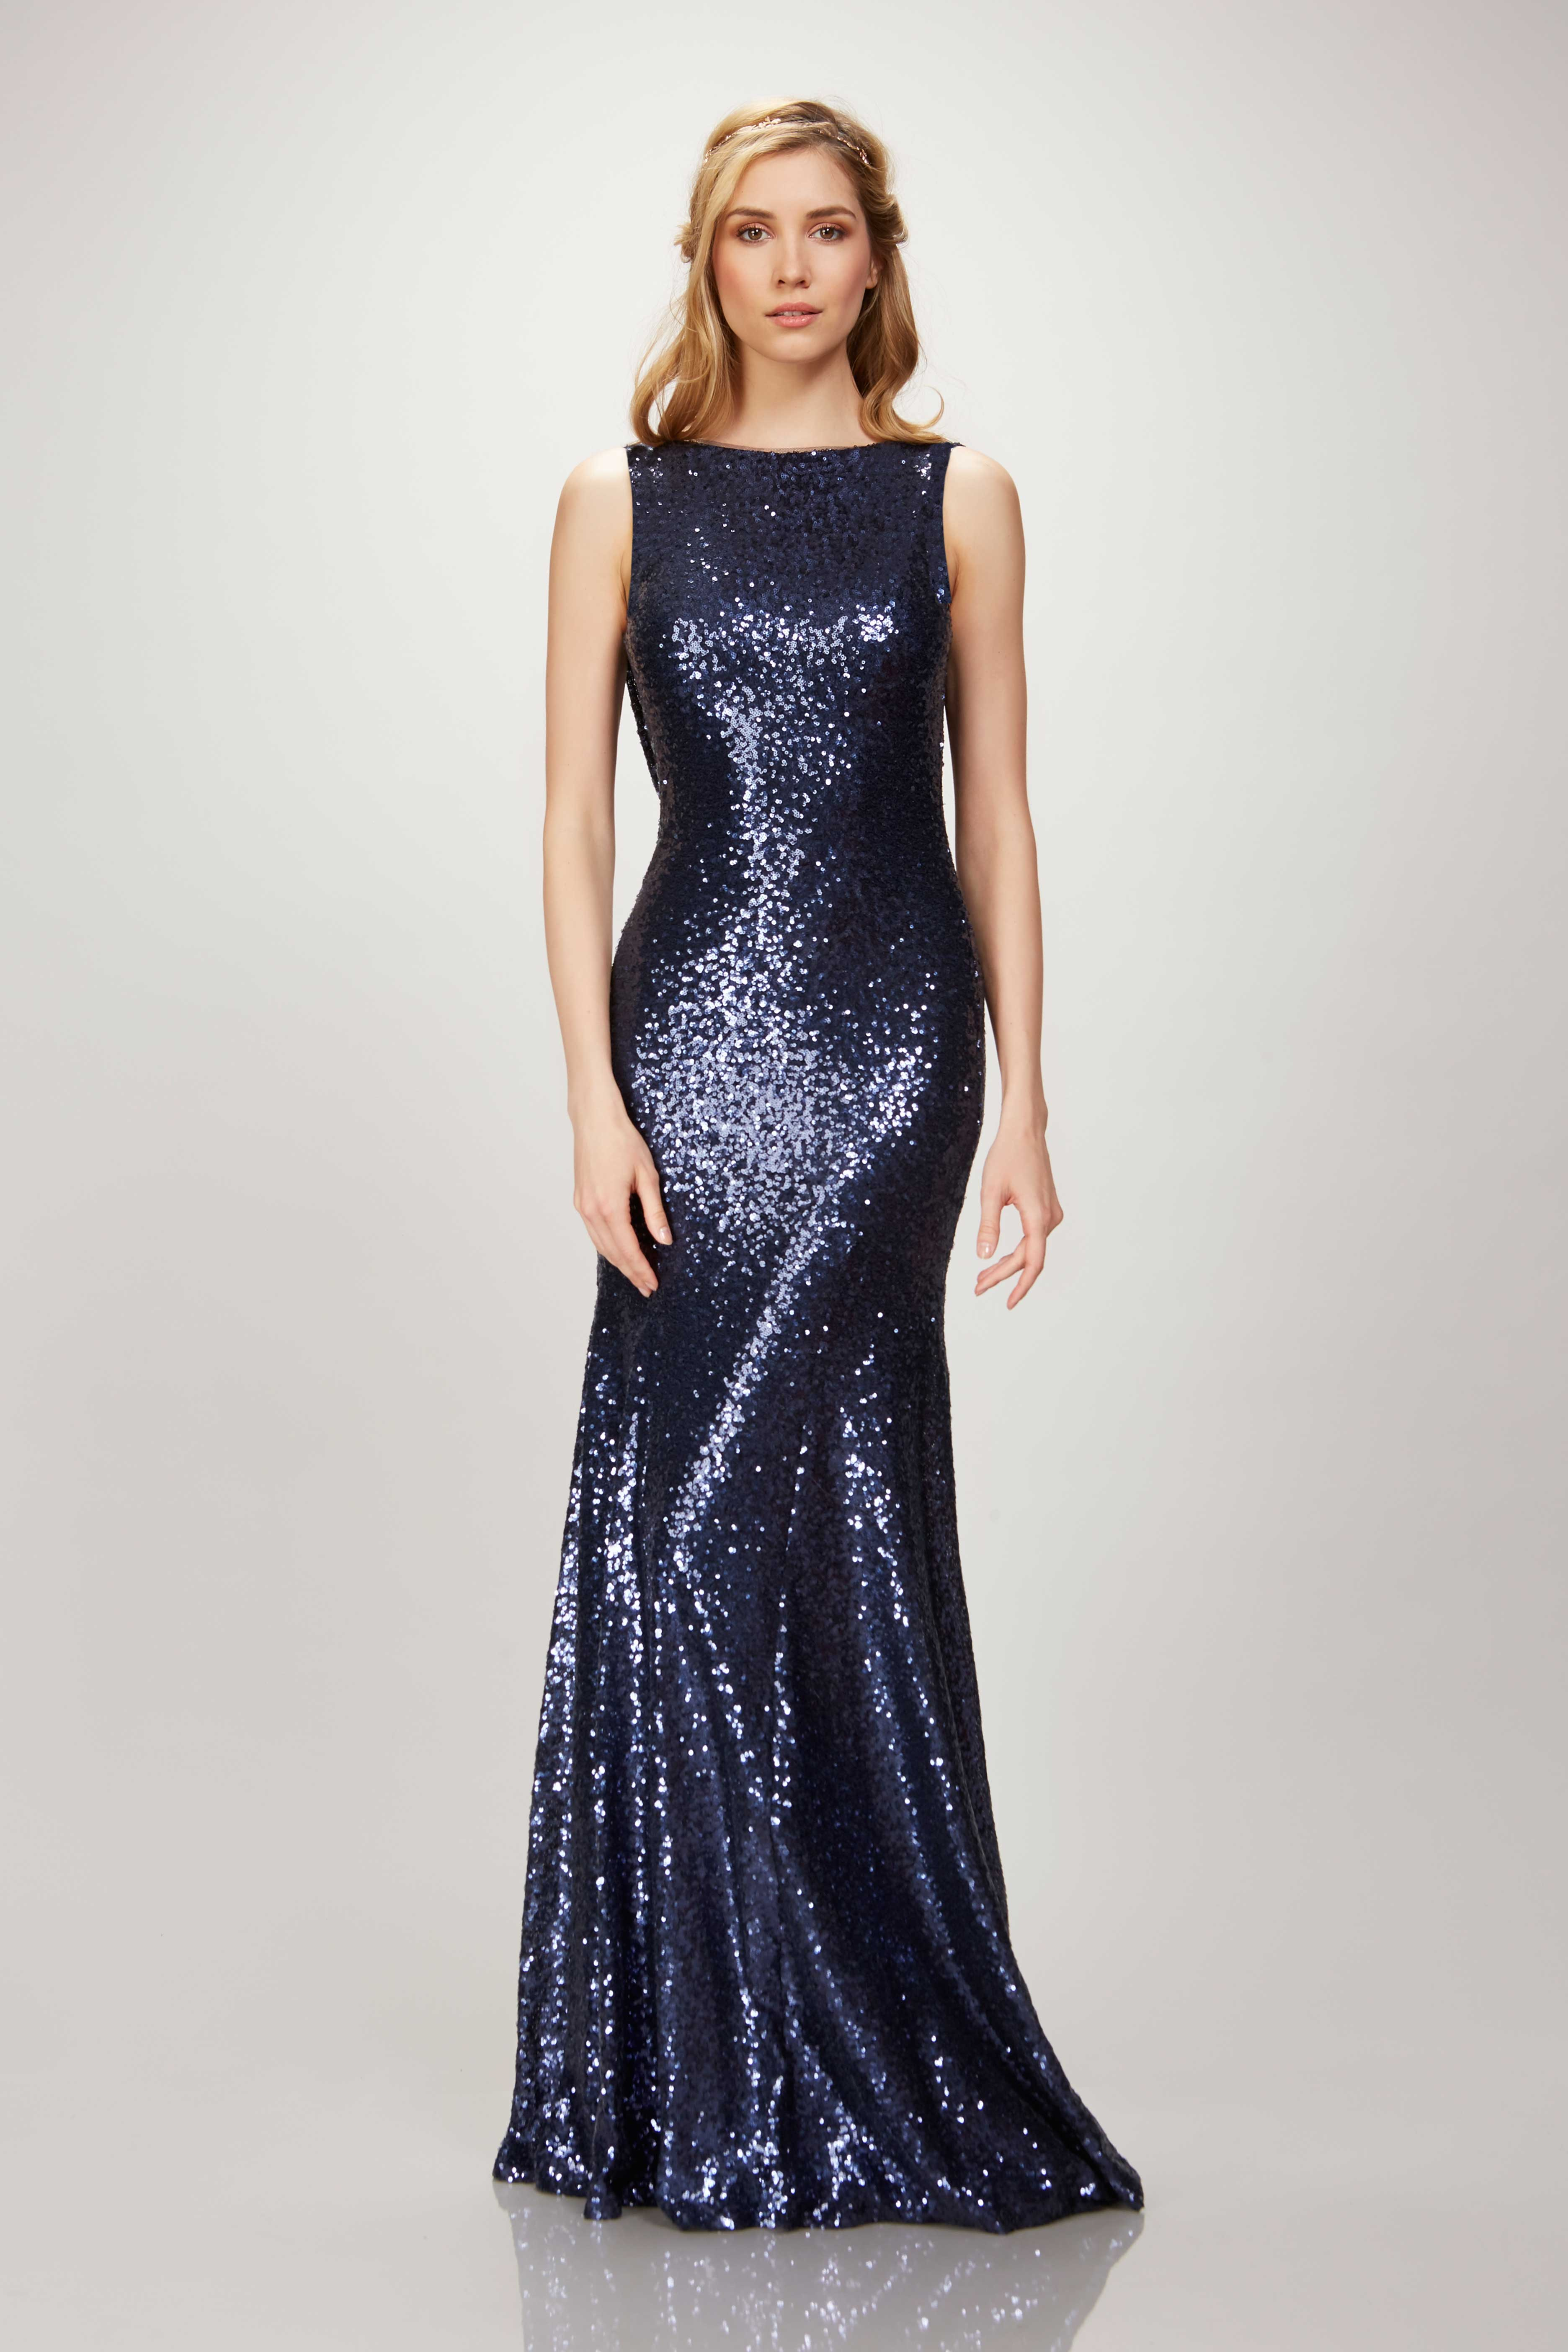 theia bridesmaids navy sequin gown with high neck, Padma Lakshi